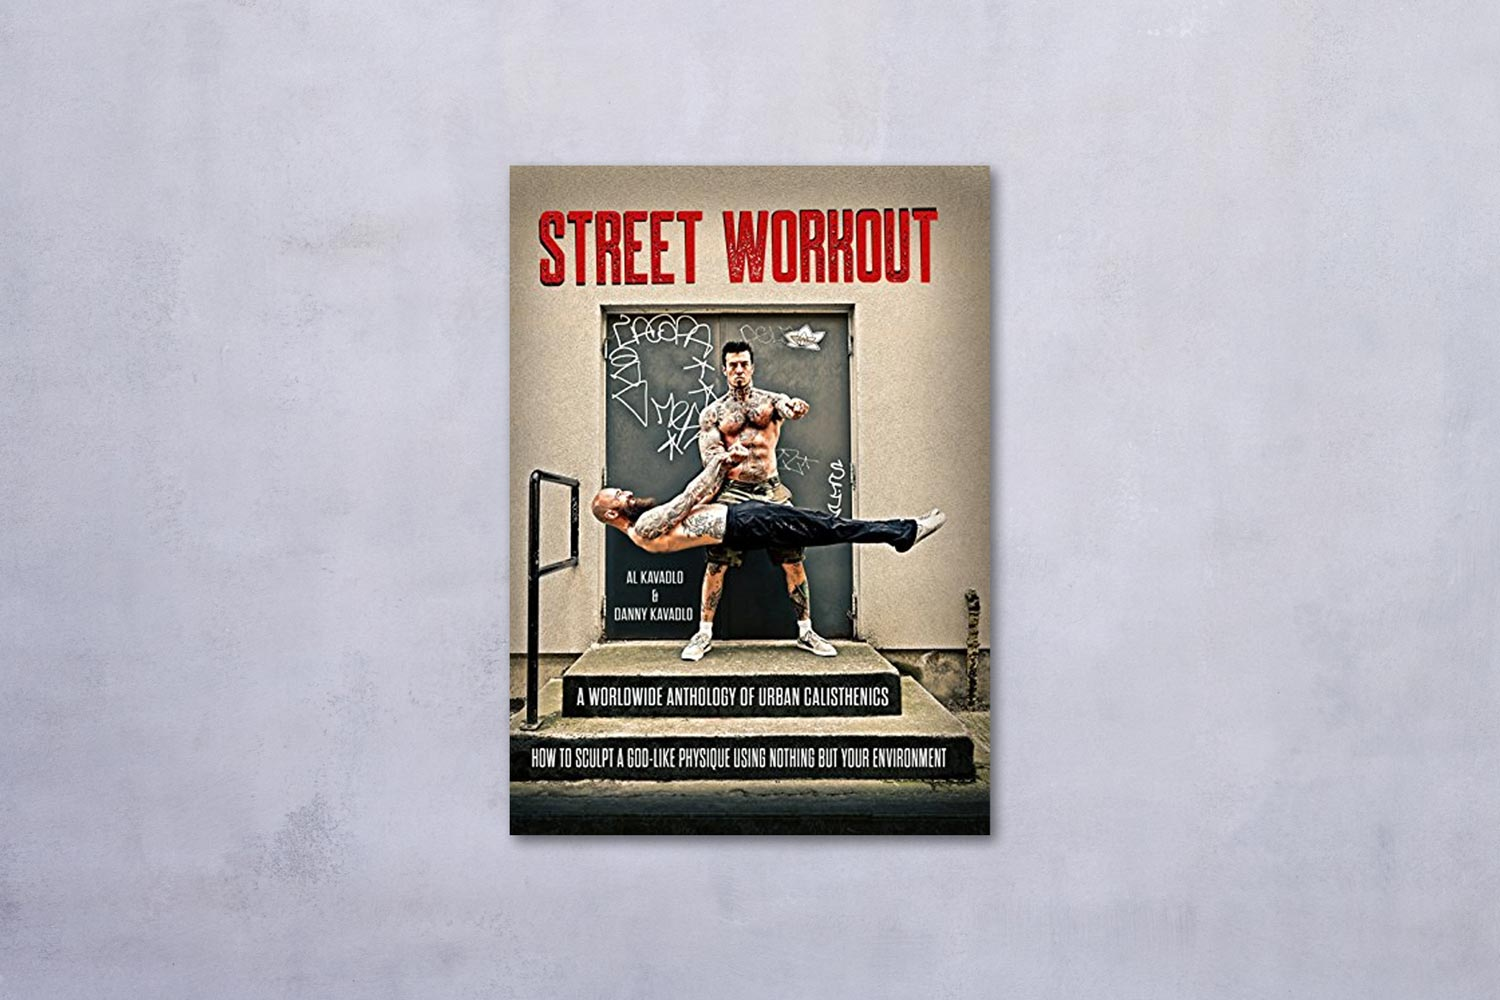 Street Workout by Al Kavadlo book cover